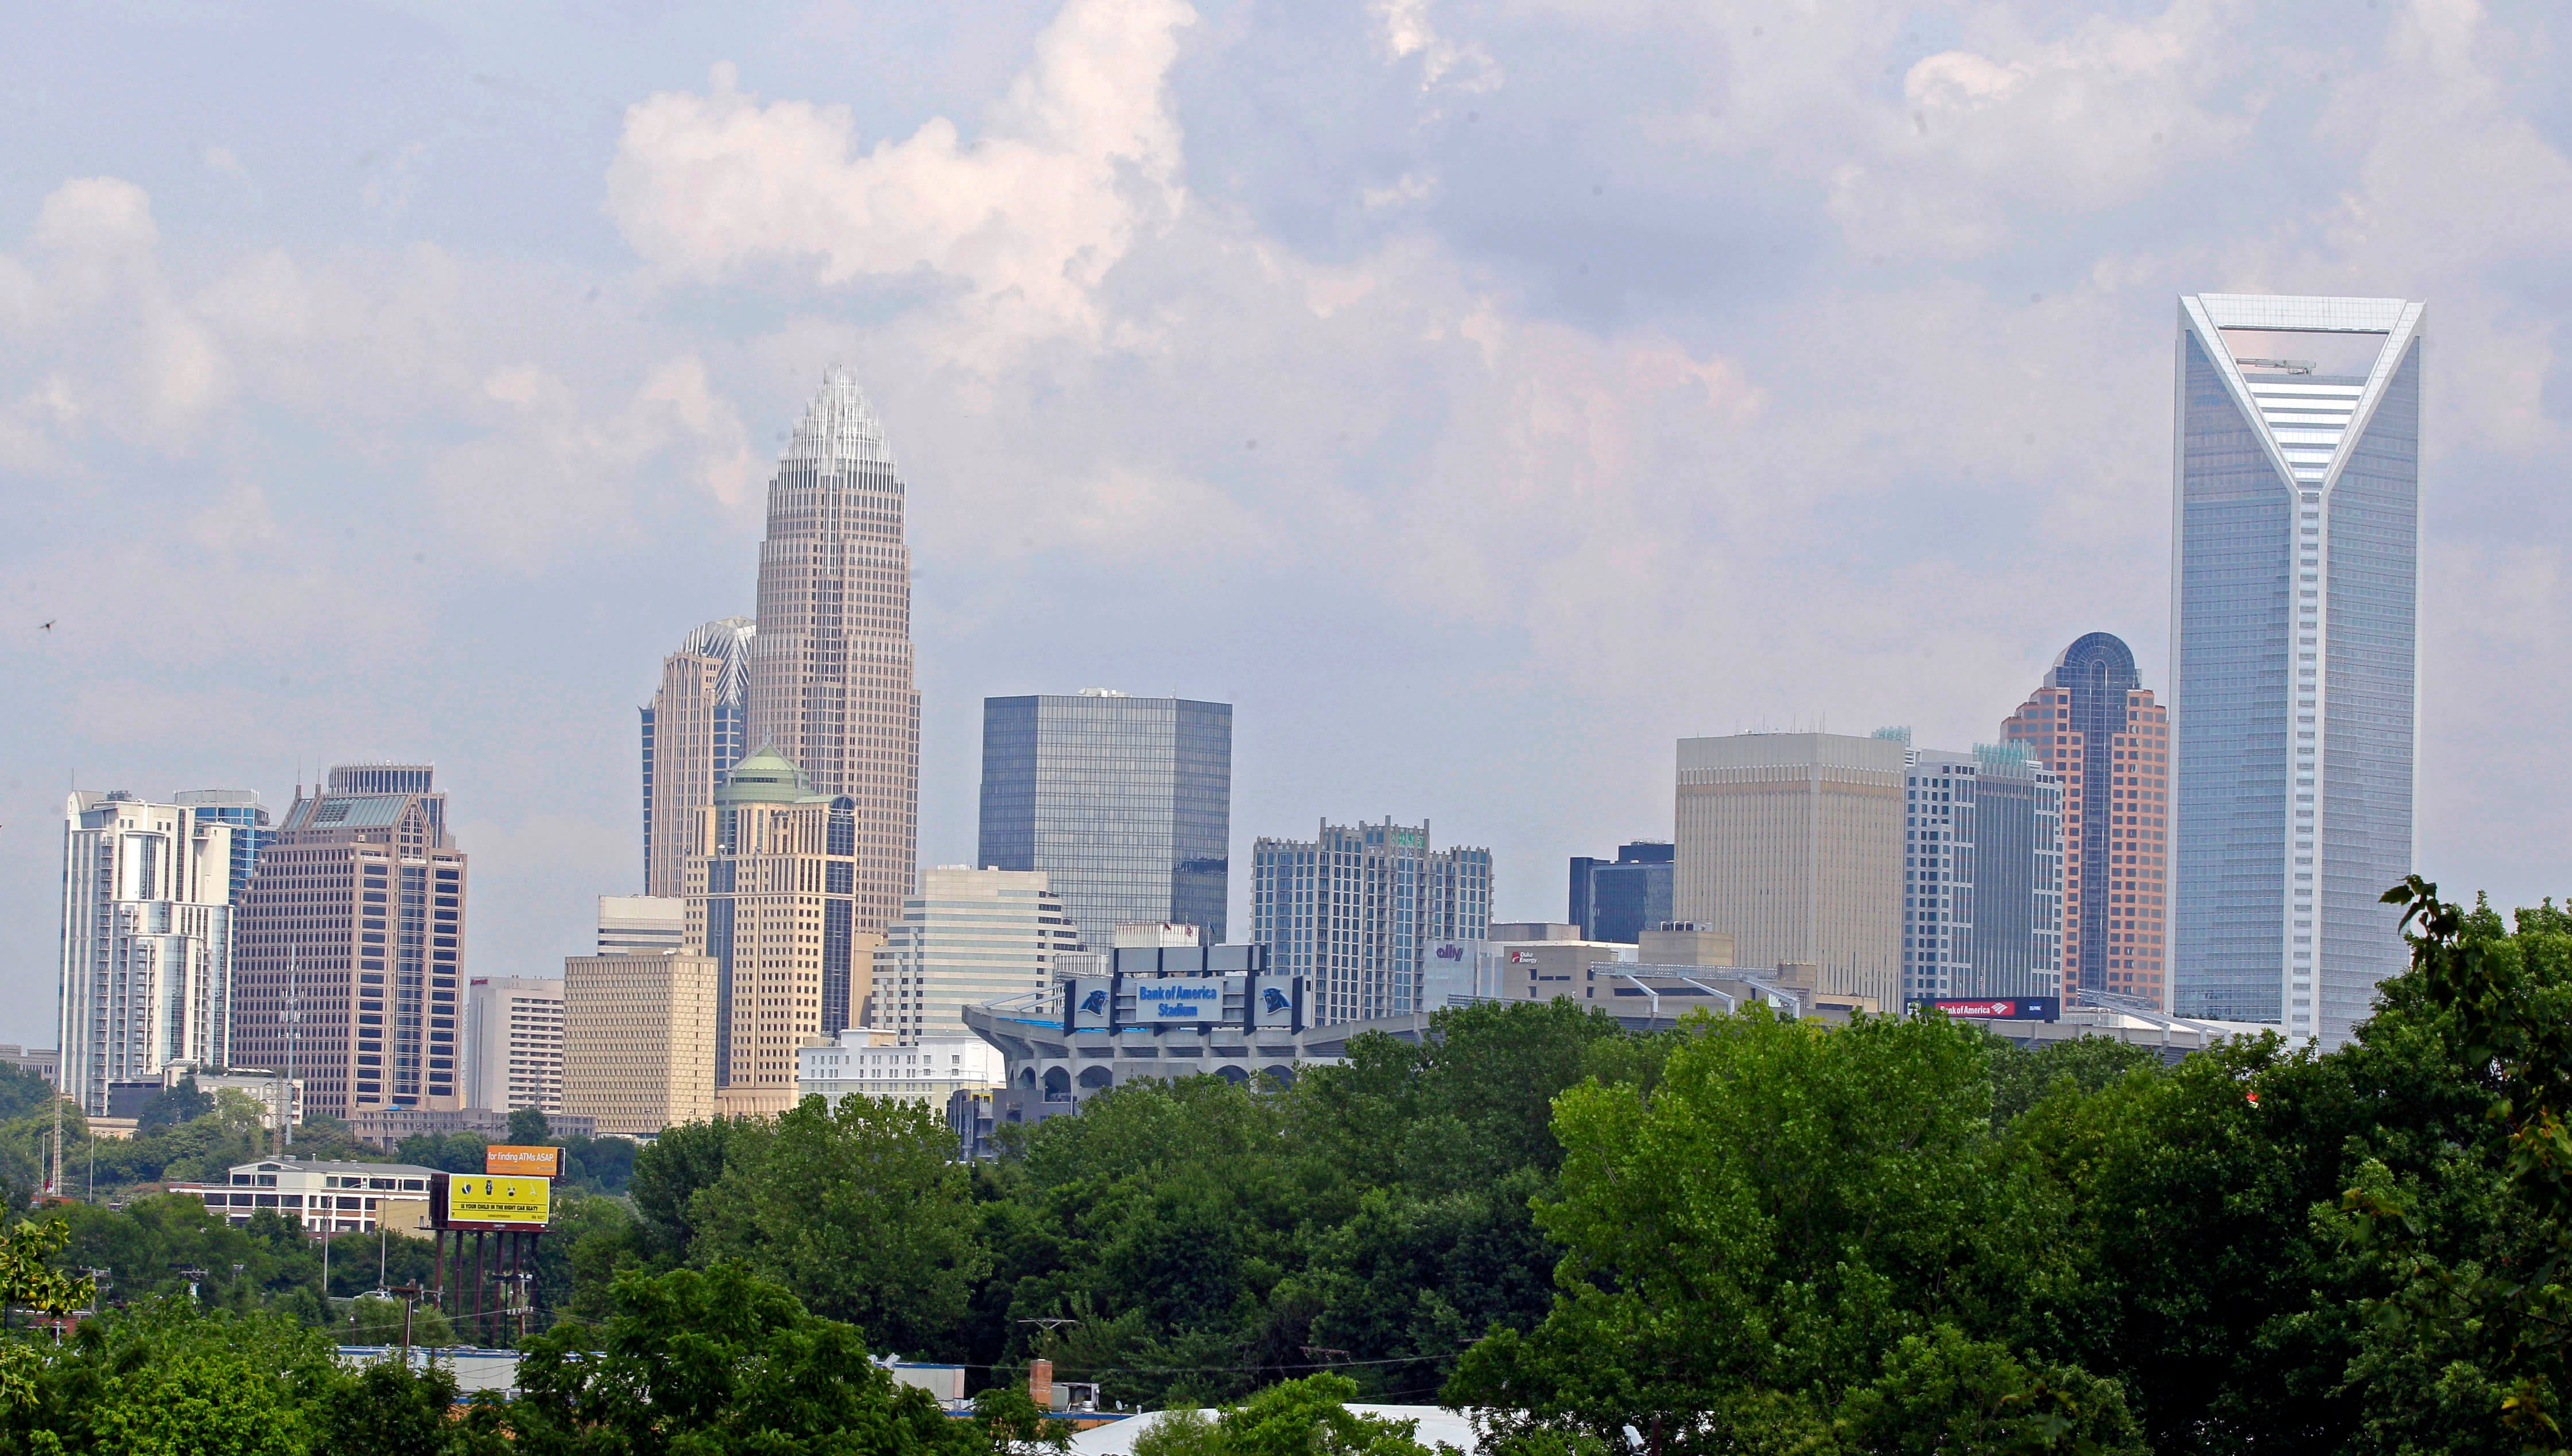 GOP picks Charlotte for 2020 Republican National Convention